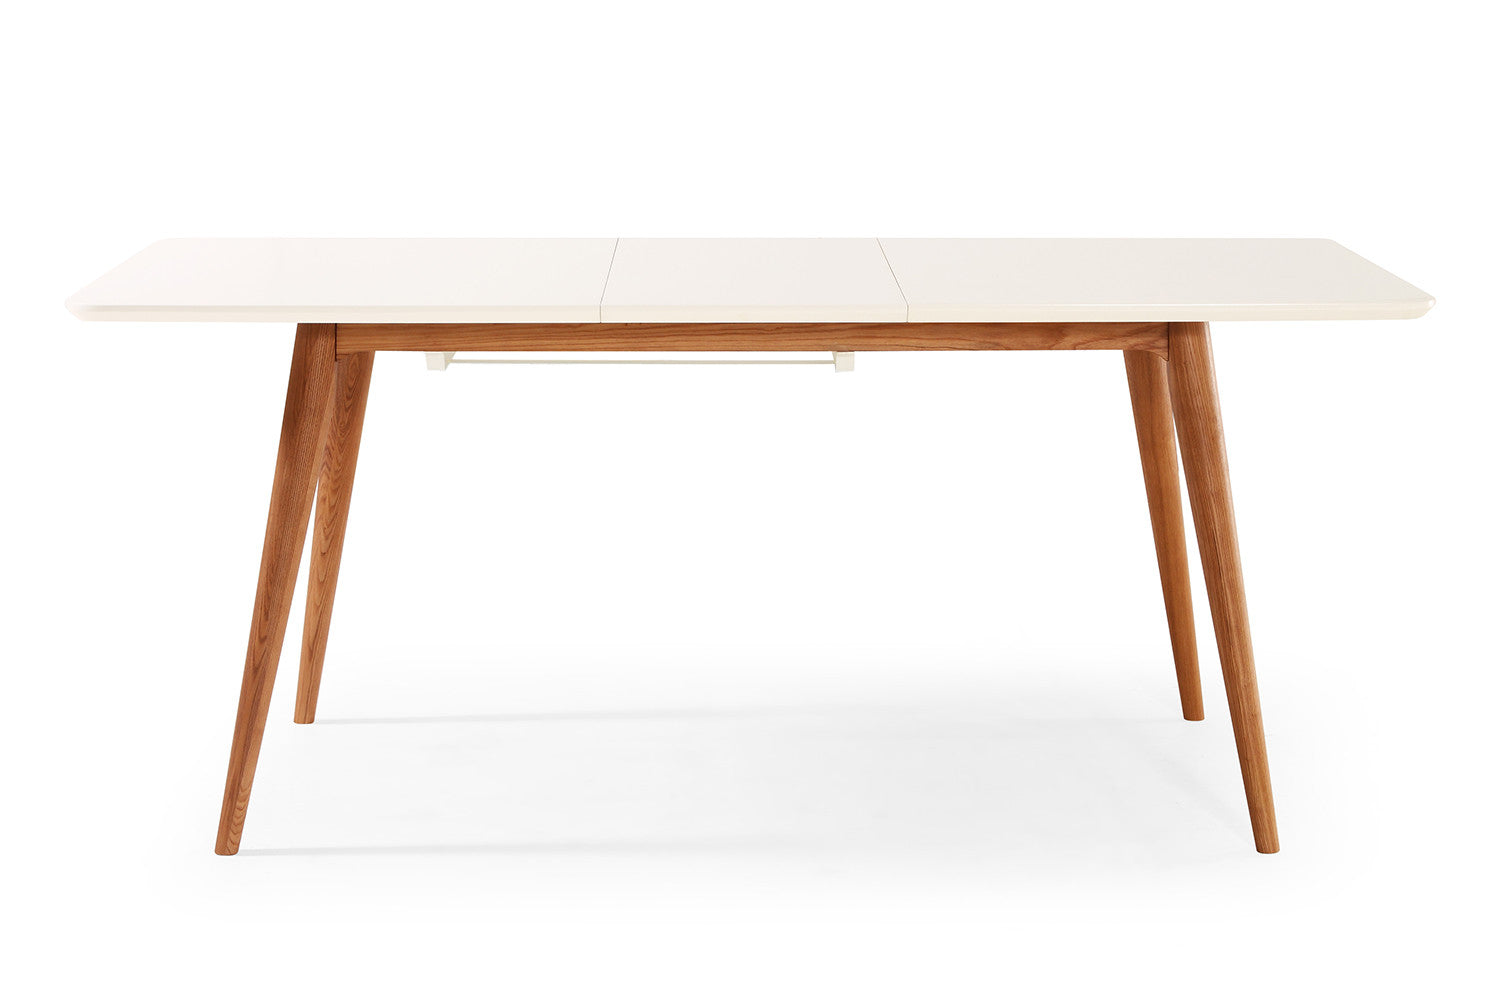 Table de salle manger extensible scandinave wyna dewarens for Table de salle a manger